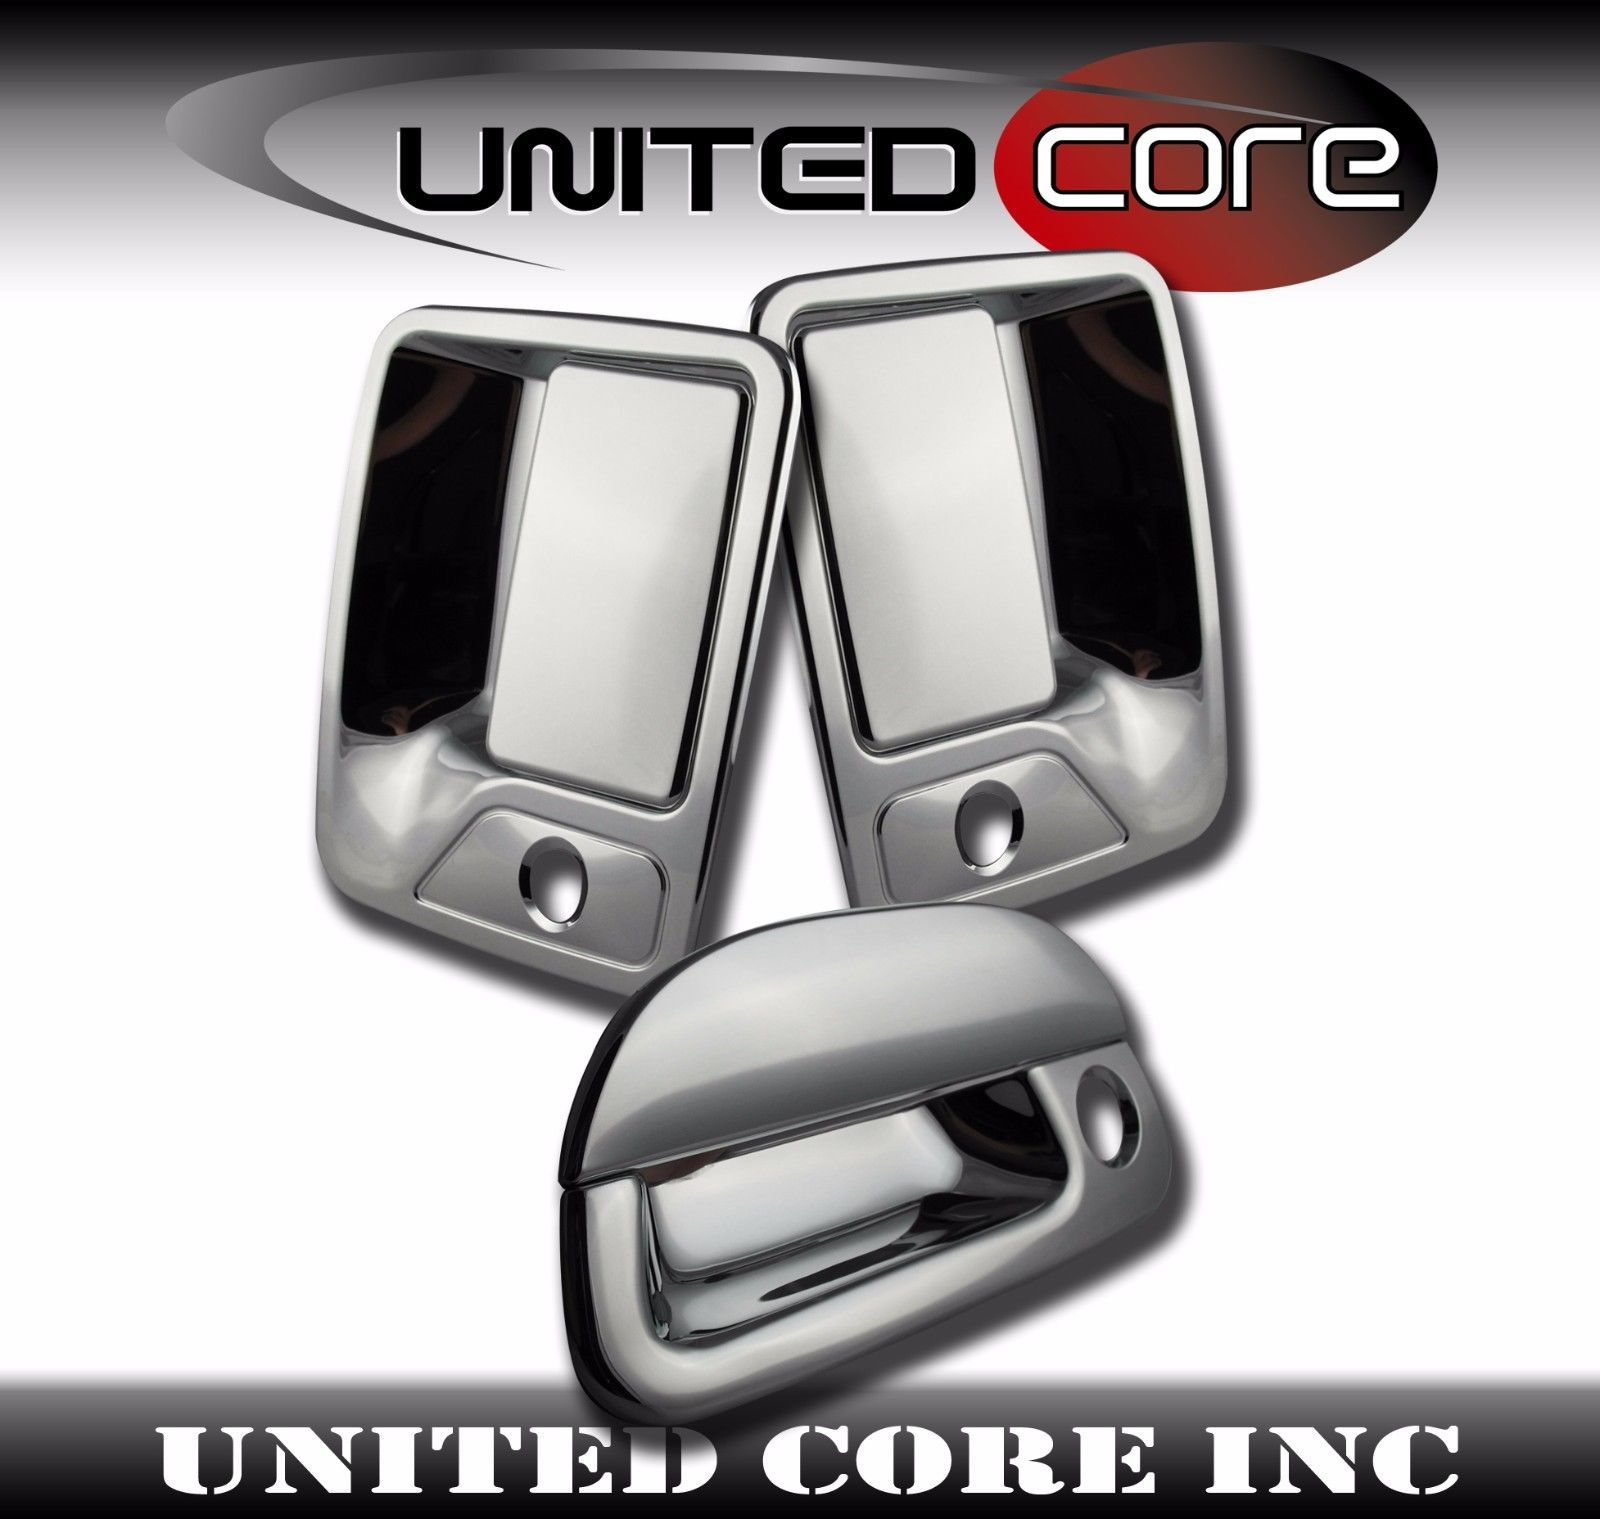 Details About Chrome Door Handle Cover Chrome Tailgate Cover Ford F250 F350 Super Duty 97 07 Chrome Door Handles F350 Super Duty Ford Super Duty